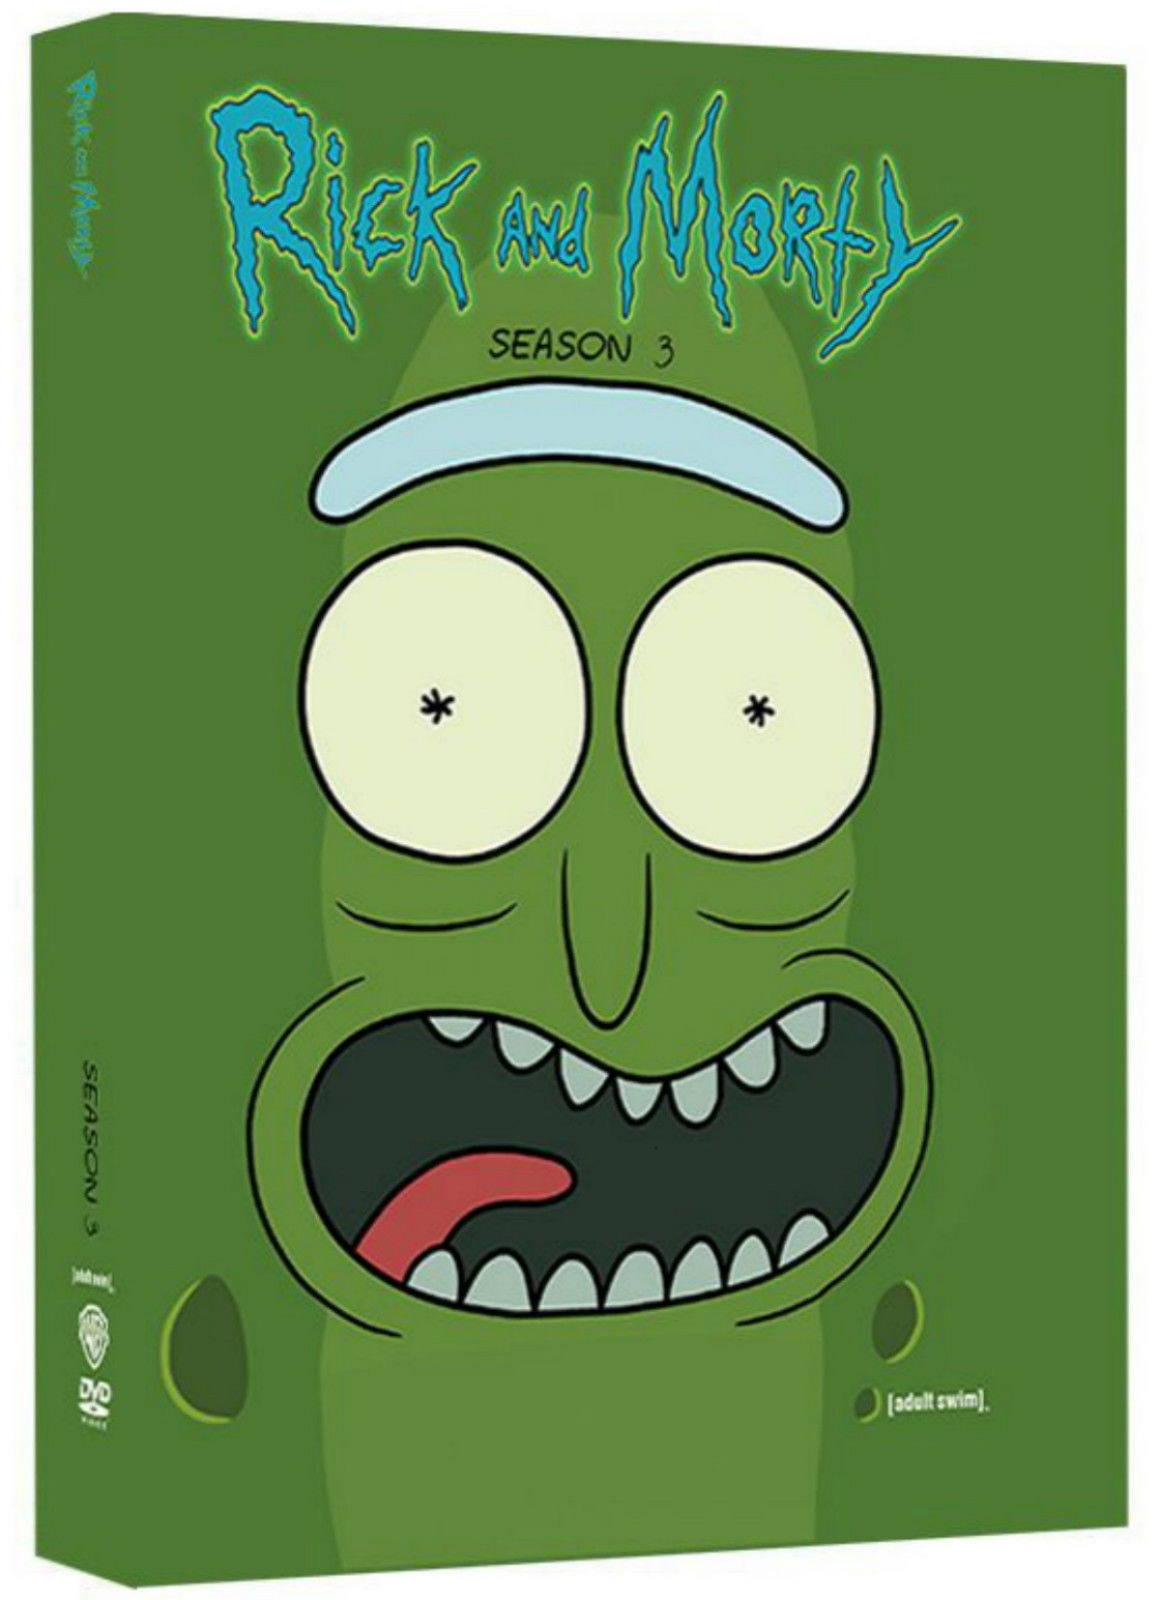 Rick and morty the complete third season three 3  2017  2 disc